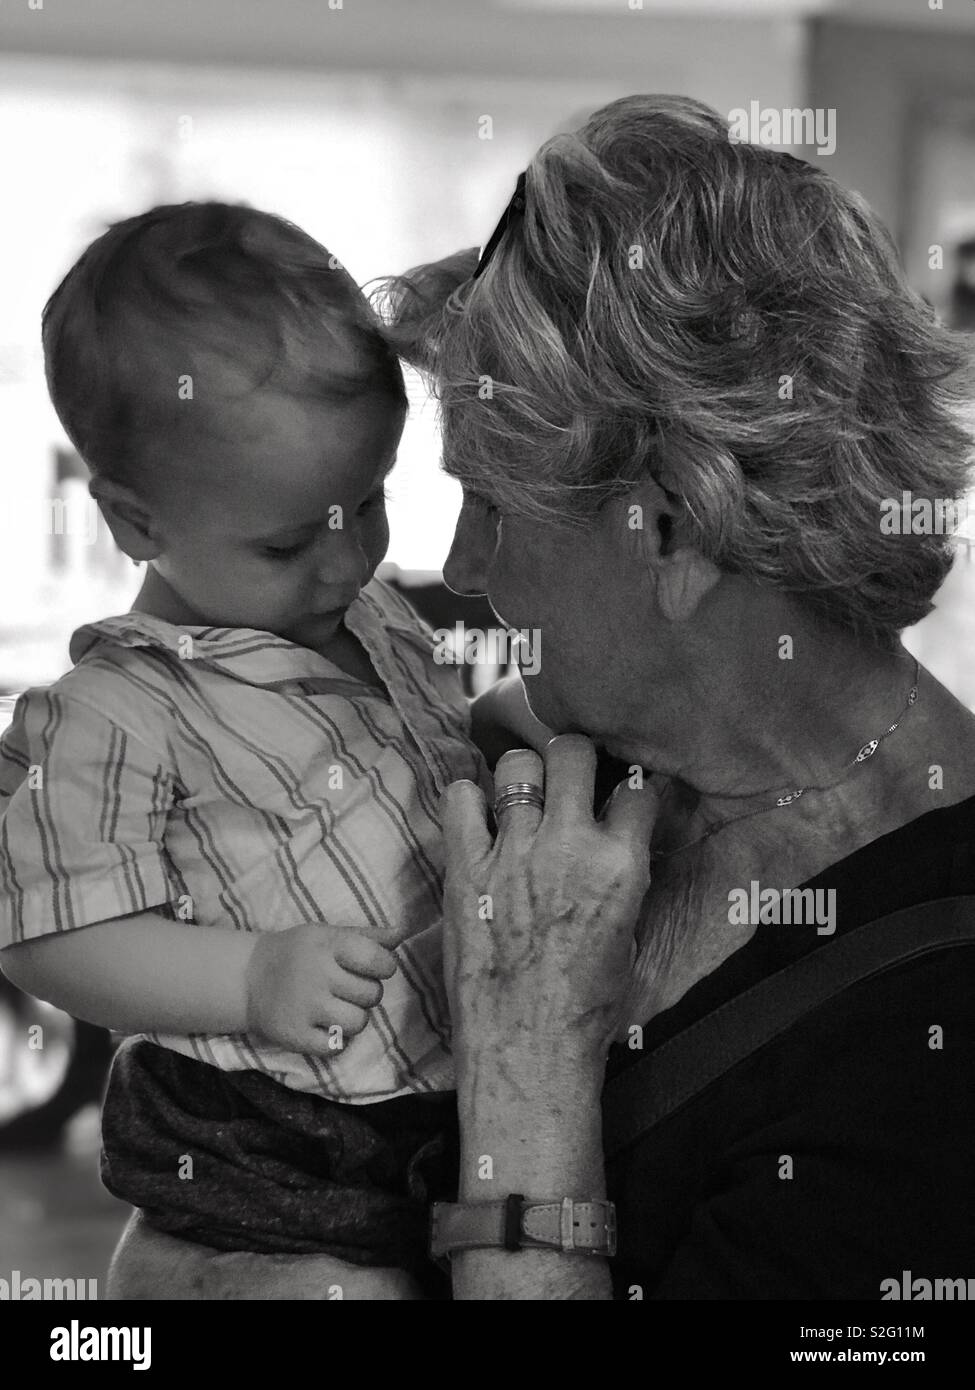 Great grandma with great grandson - Stock Image